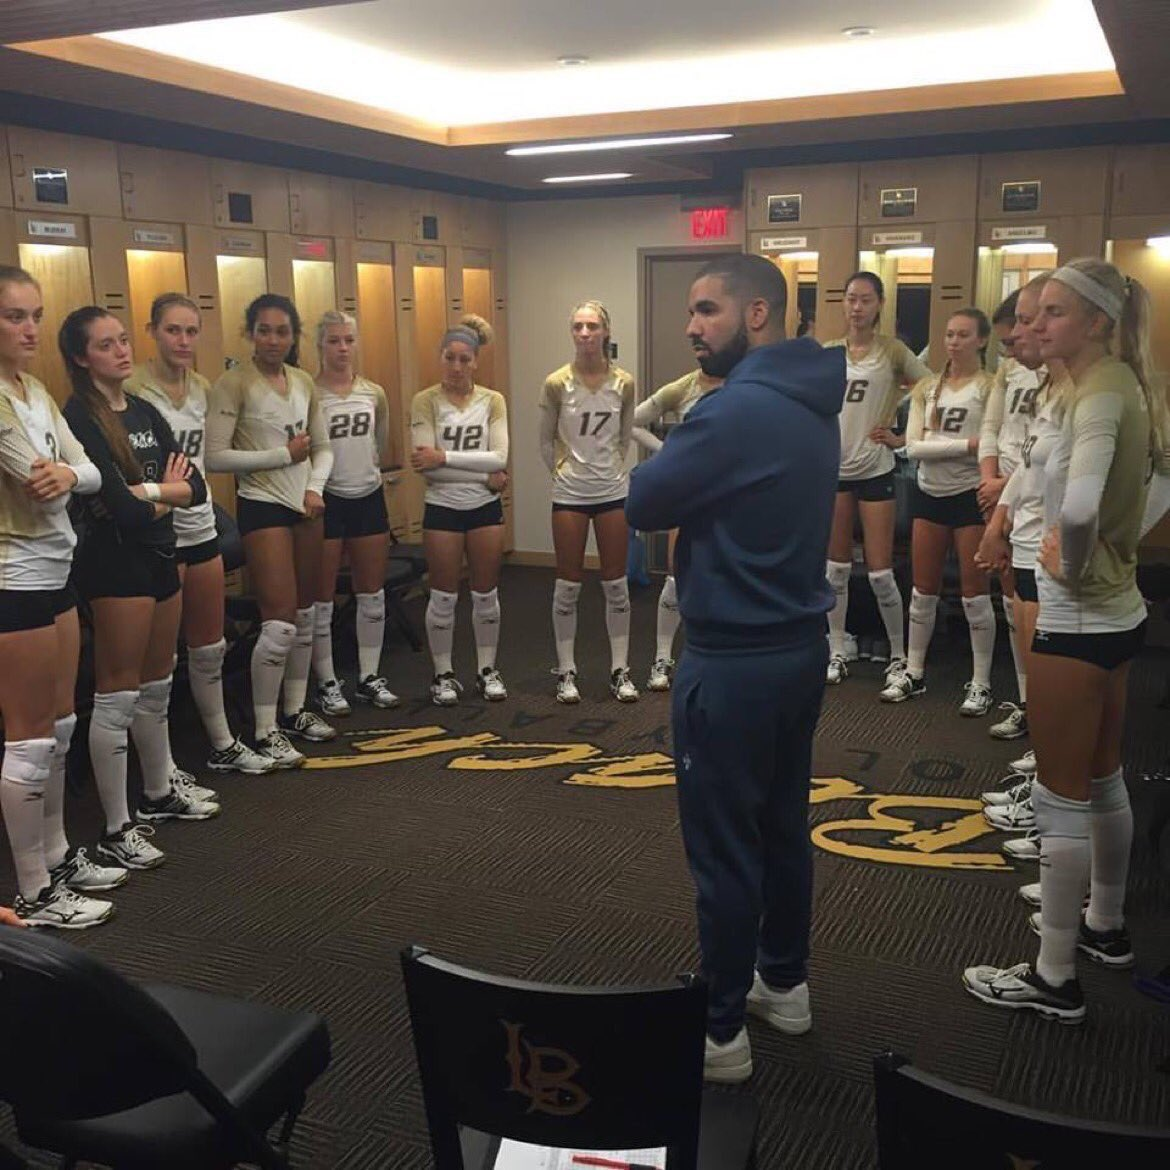 The Internet Meme'd Drake's Appearance In A Volleyball Team Locker Room